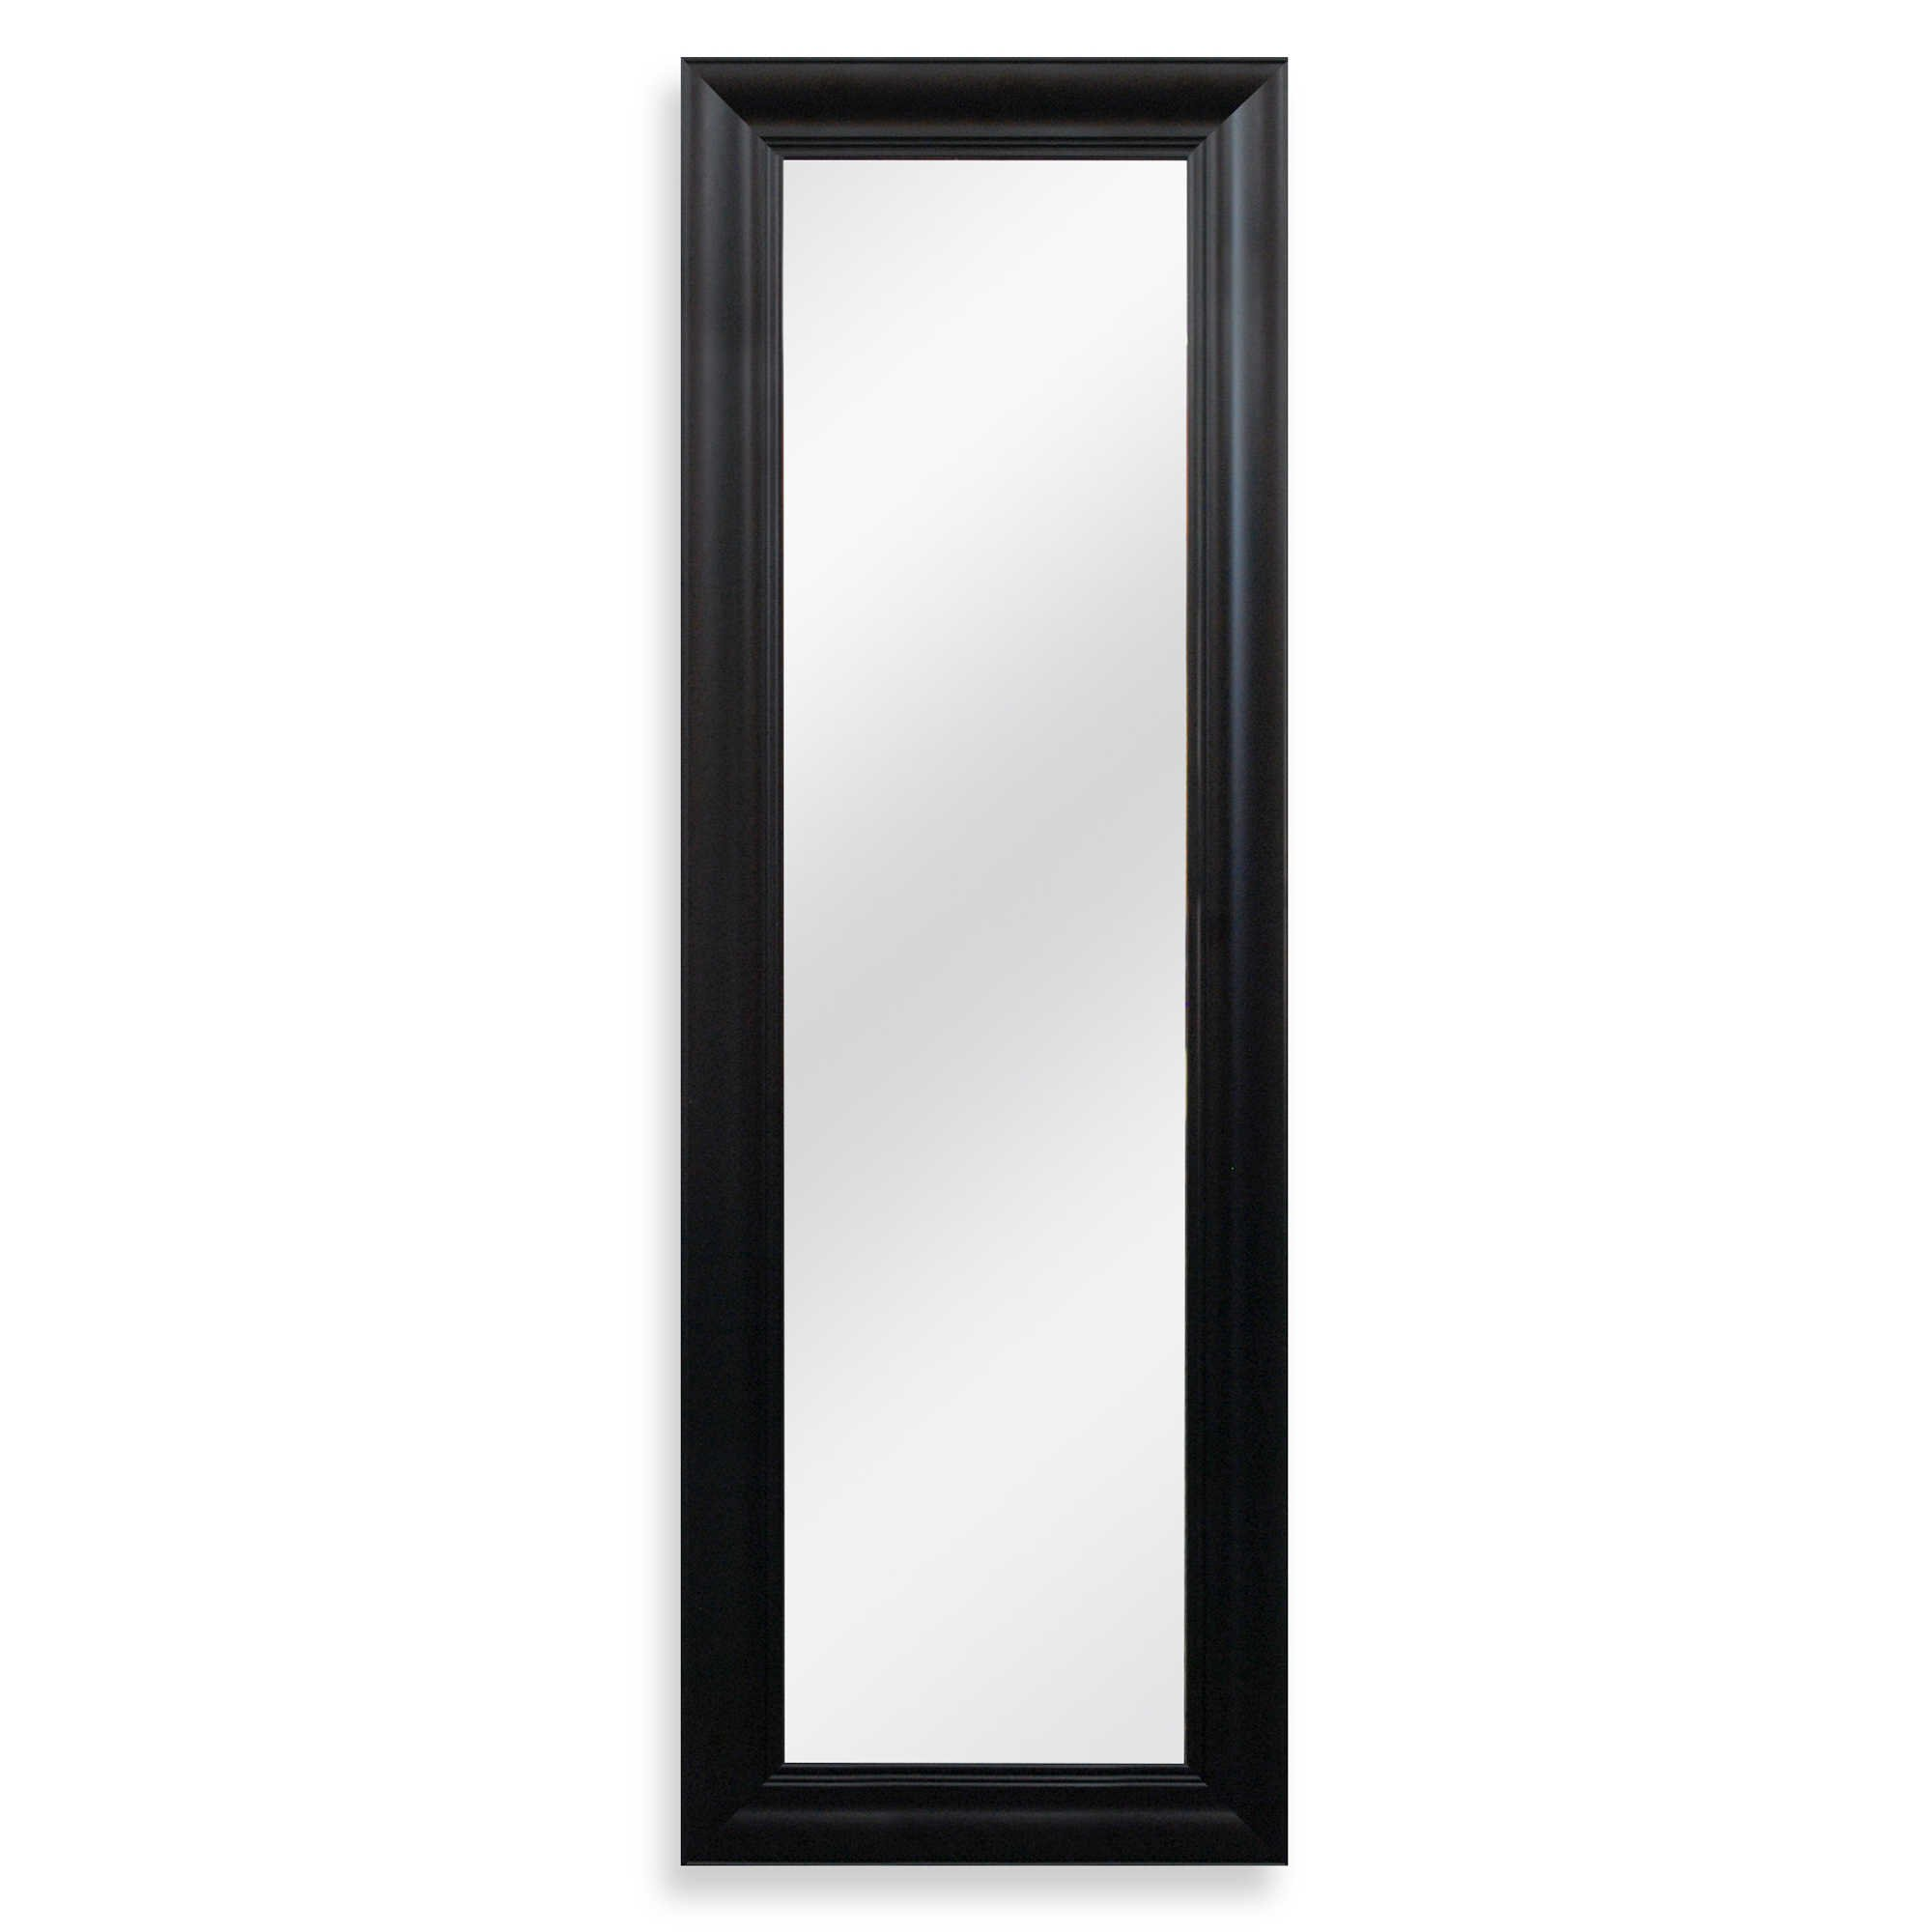 Elegant Trendy Chic Adjustable Hook Height Patented No-Tools Over-the-Door Mirror in Black features Preattached Hardware